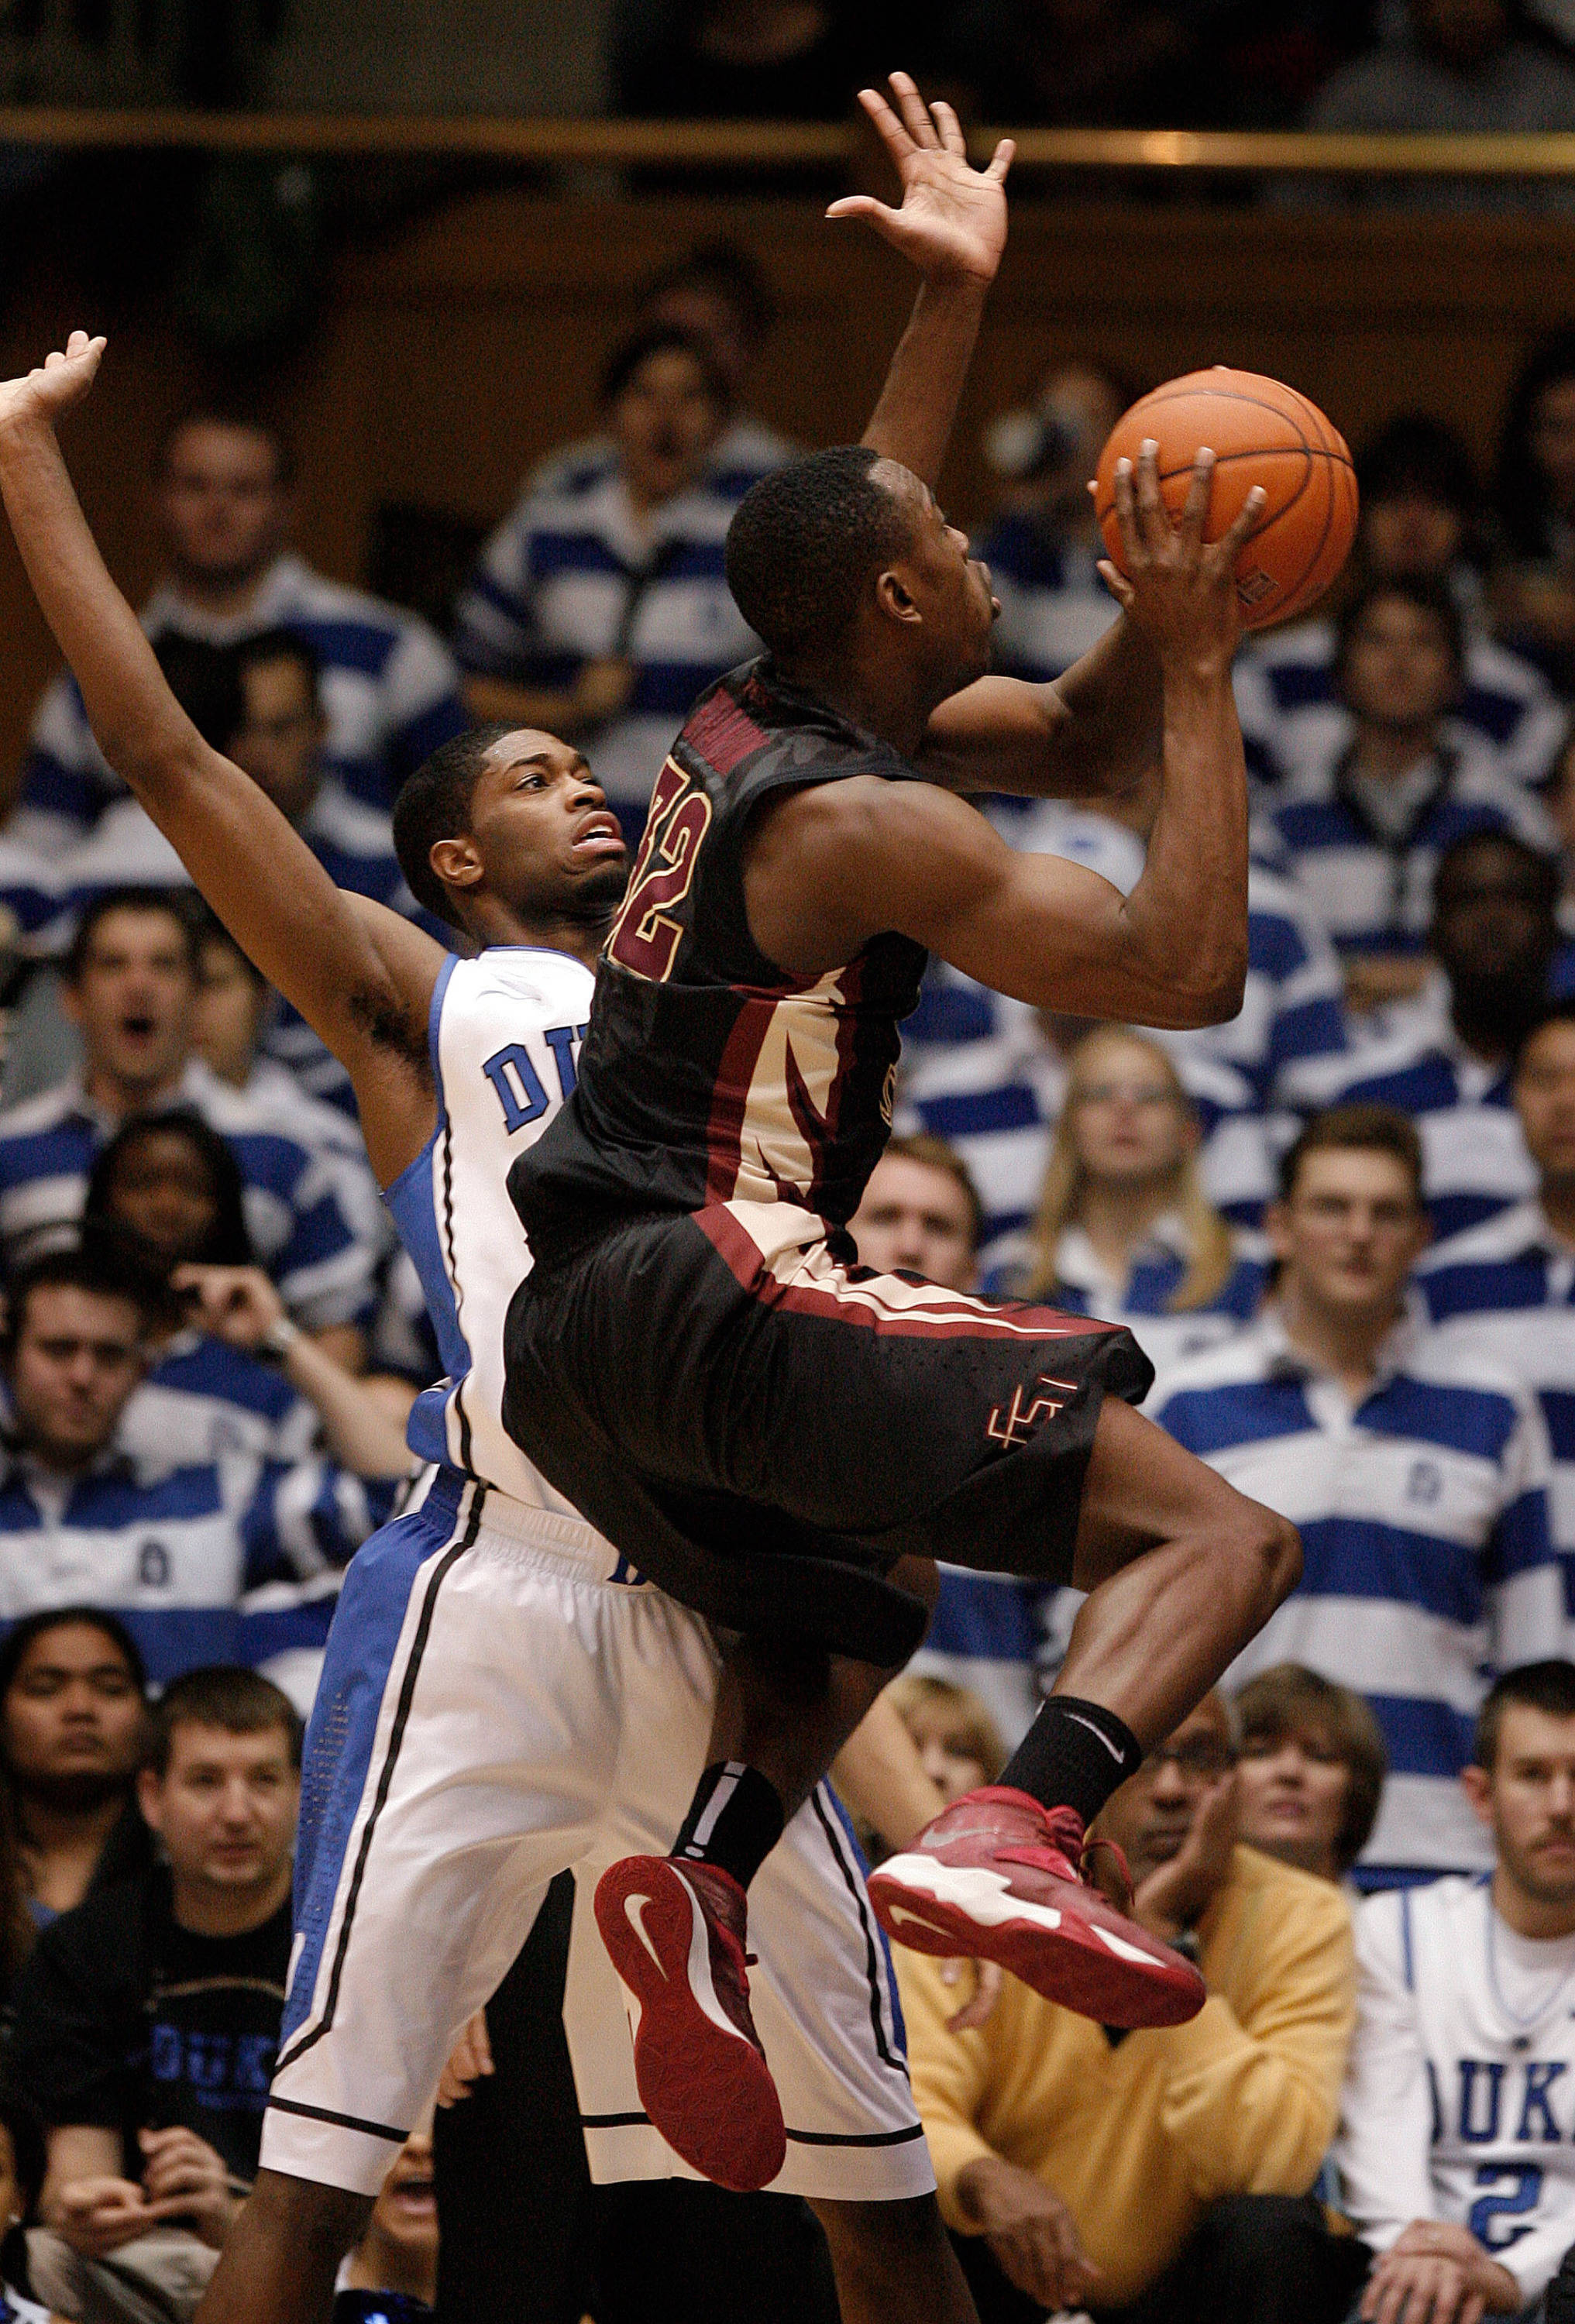 Jan 25, 2014; Durham, NC, USA; Seminoles guard Montay Brandon (32) drives against Duke Blue Devils forward Amile Jefferson (21). Mark Dolejs-USA TODAY Sports